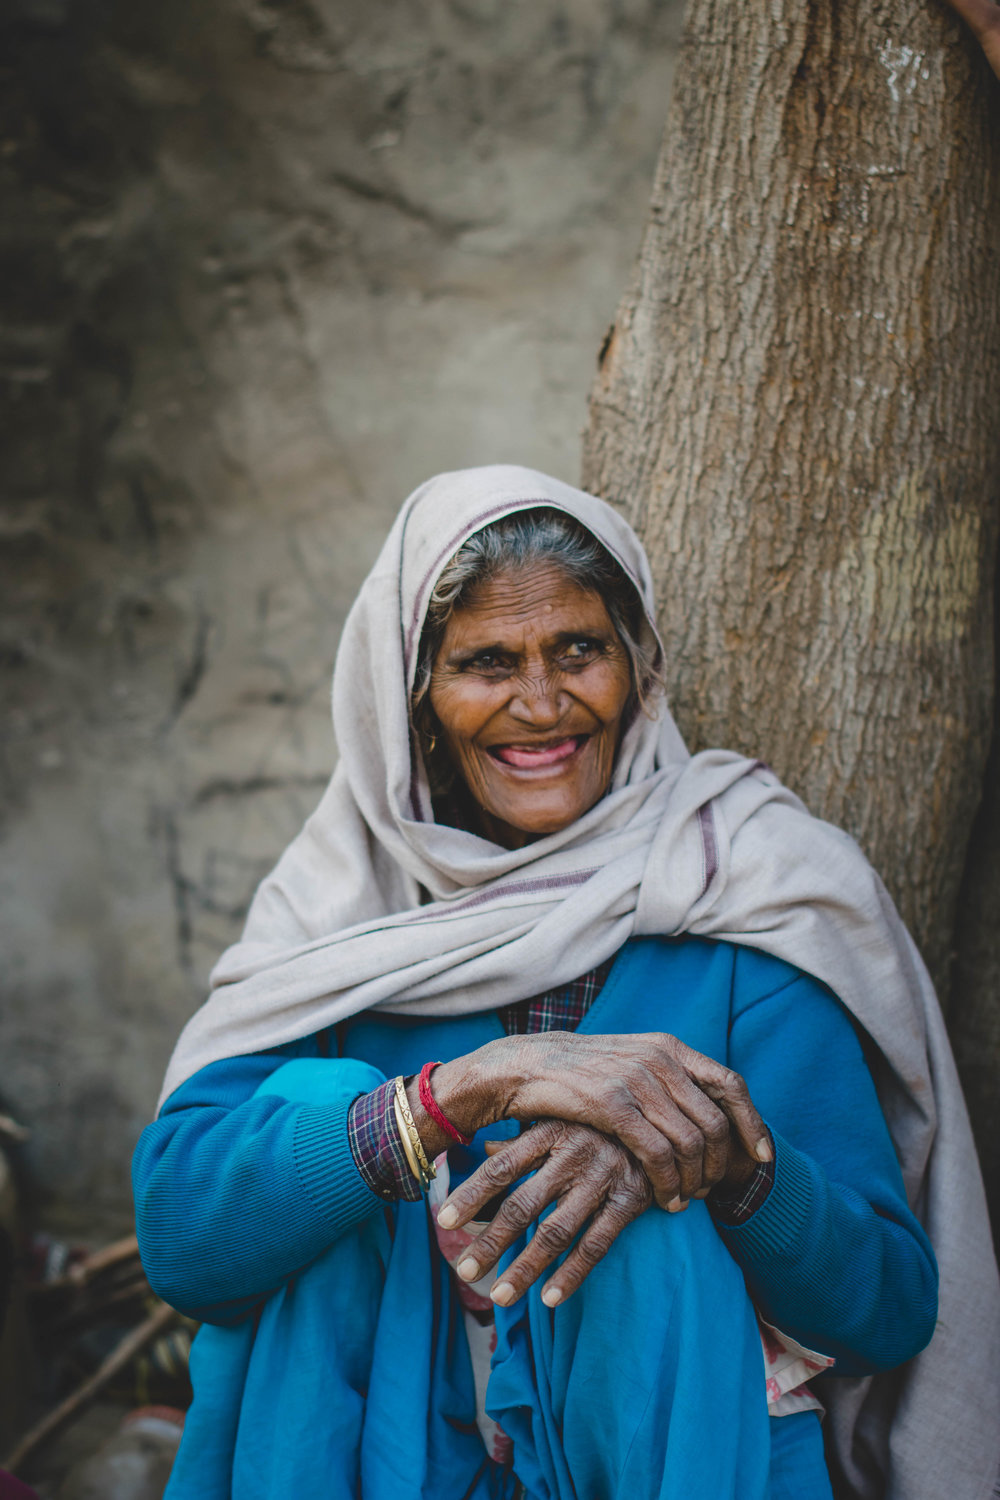 A toothless smile, deeply wrinkled hands, and joy in her eyes - this is Ram Rakhi. She has a million stories to tell and anyone who's met her knows she is eager to tell them.